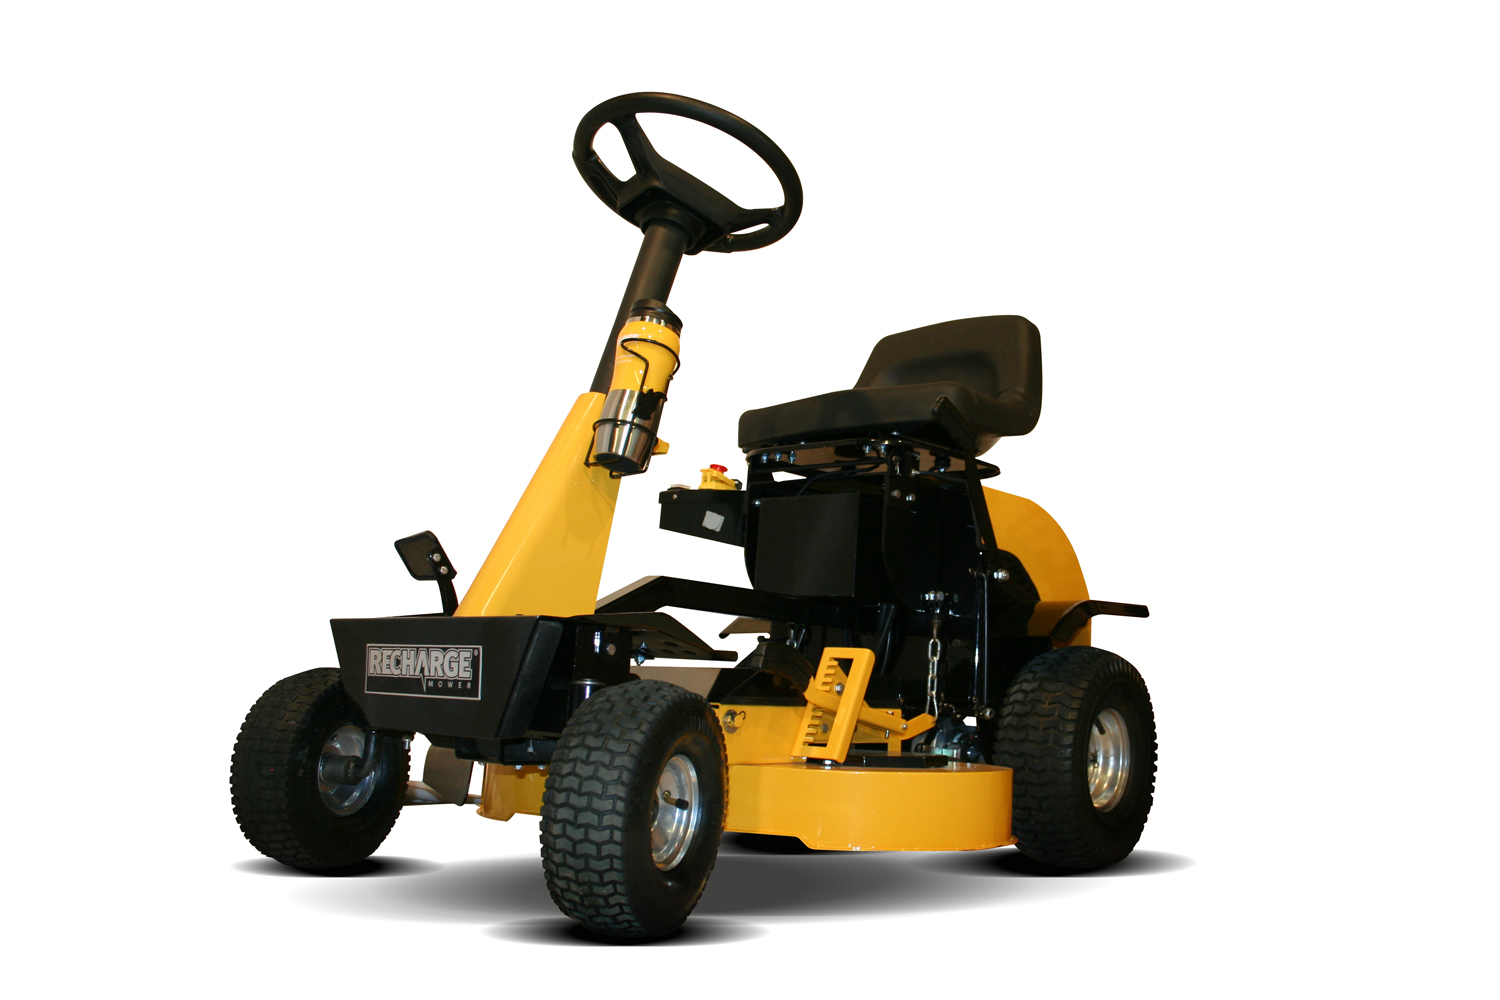 Lowes Com Gives The Eco Friendly Recharge Mower G2 The